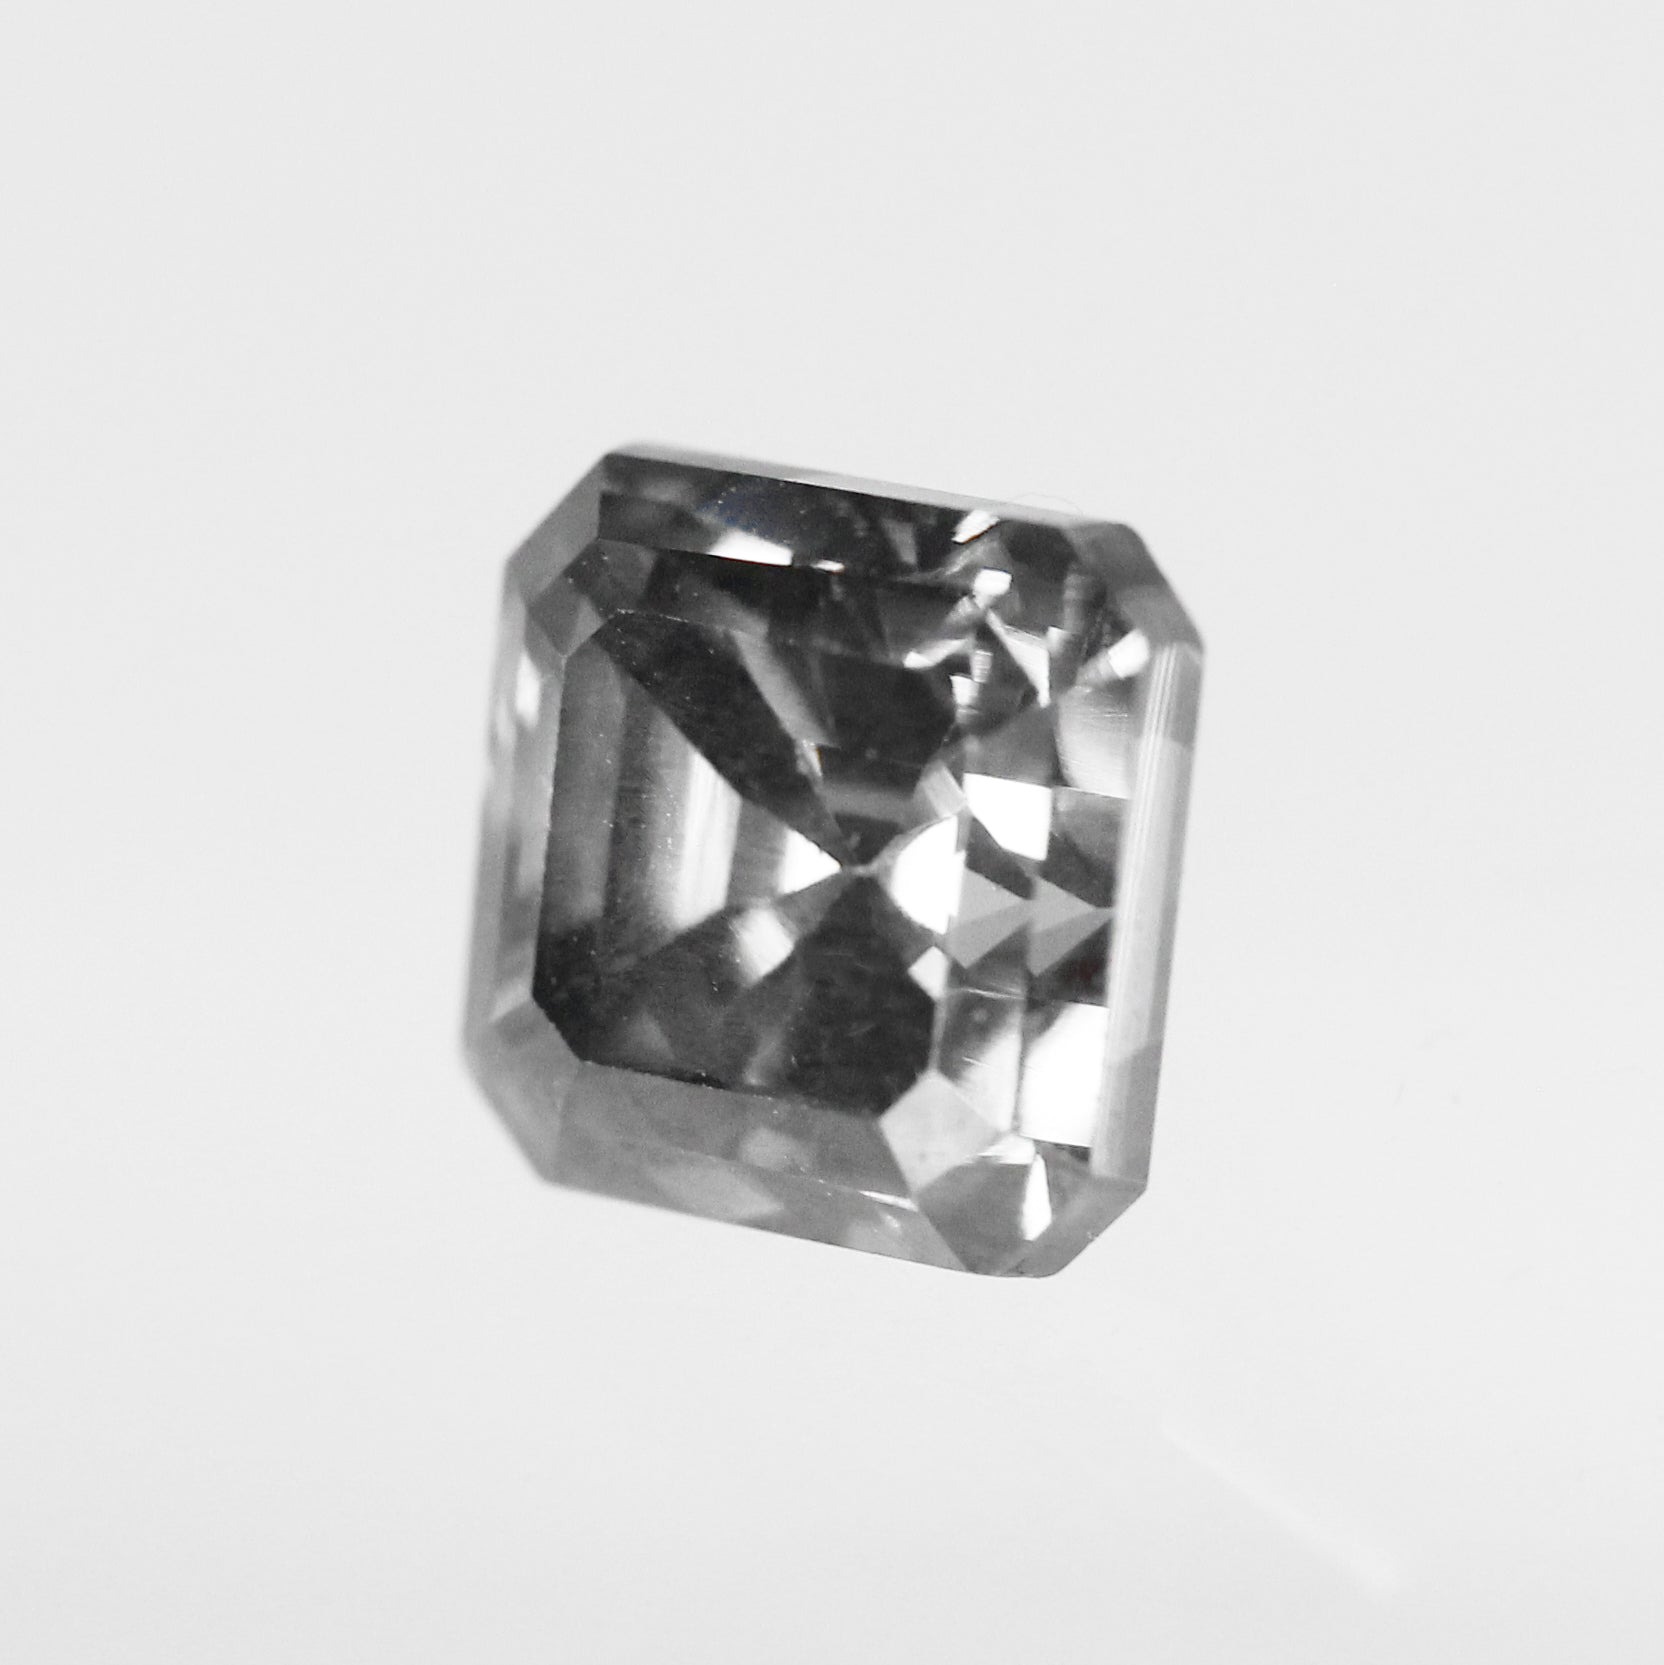 1.66 Carat Asscher Moissanite for Custom Work - Inventory Code ABMOI166 - Midwinter Co. Alternative Bridal Rings and Modern Fine Jewelry